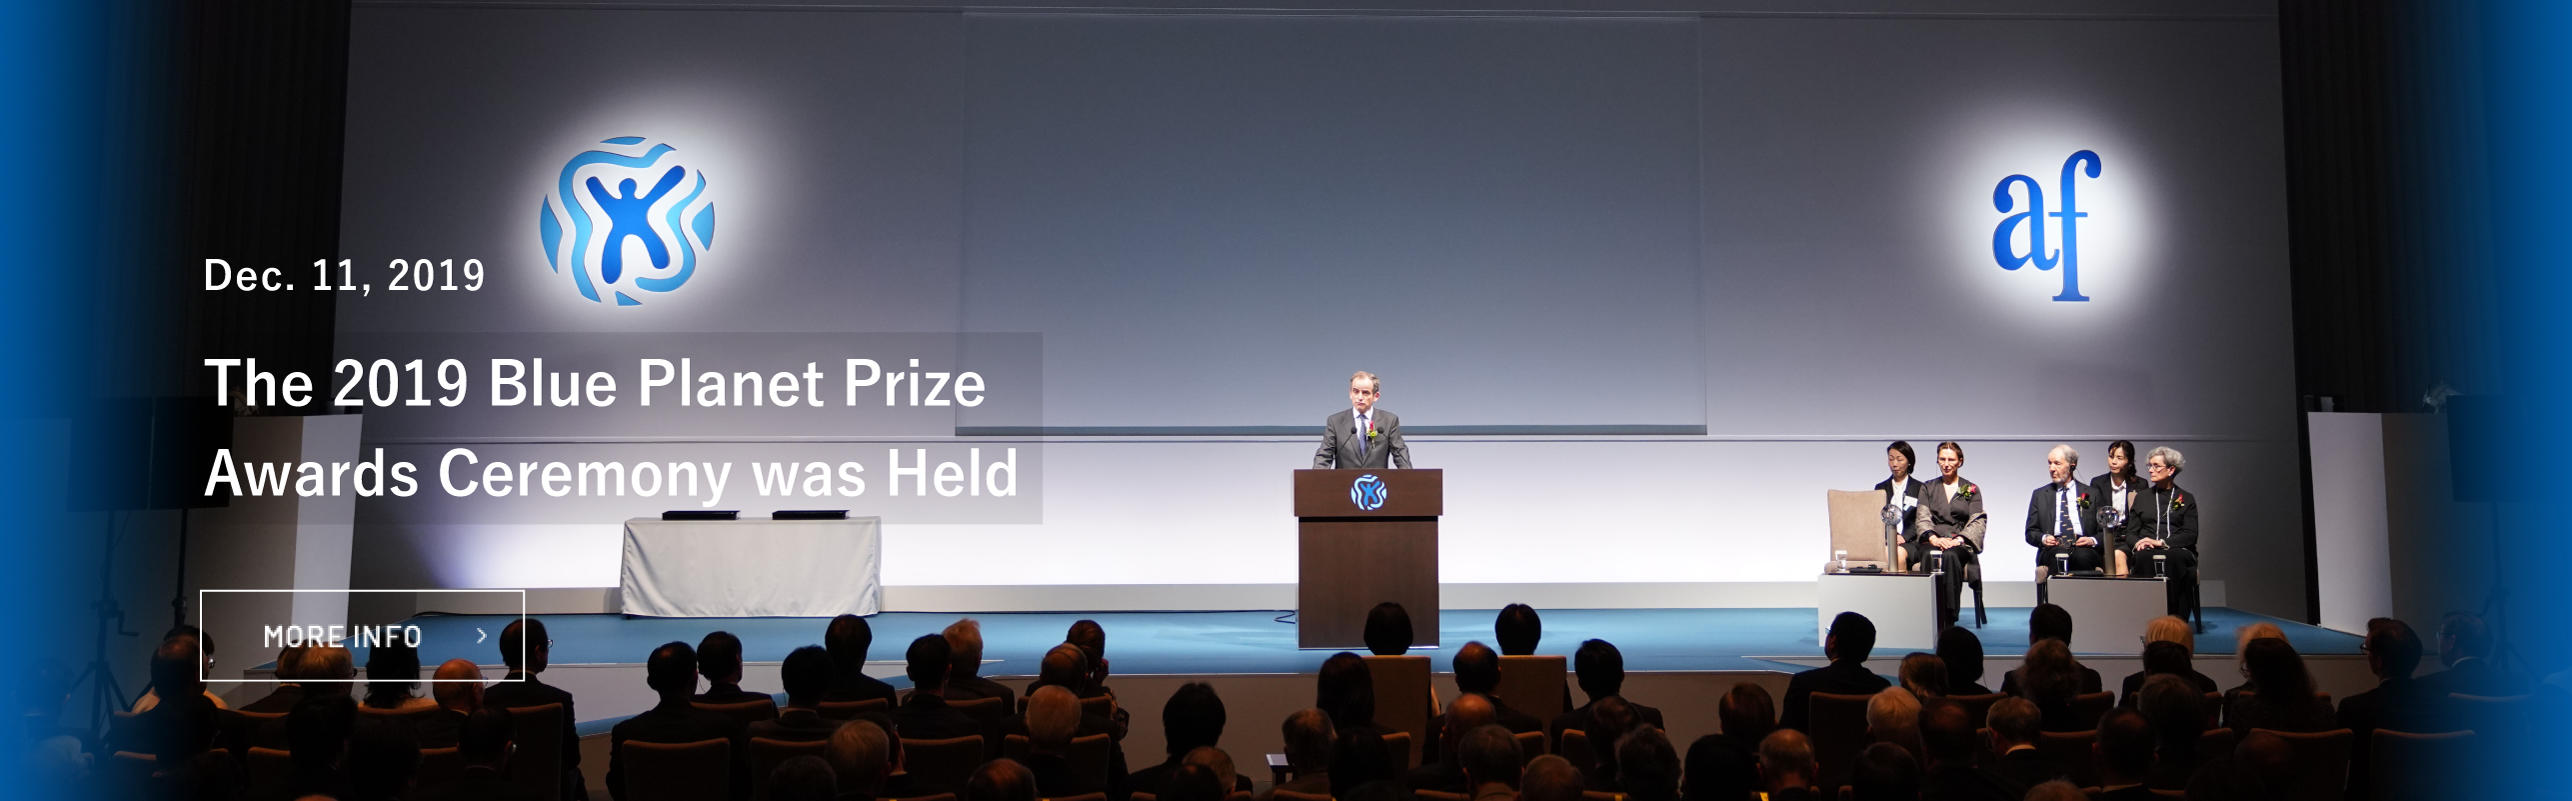 2019 Blue Planet Prize Awards Ceremony was held